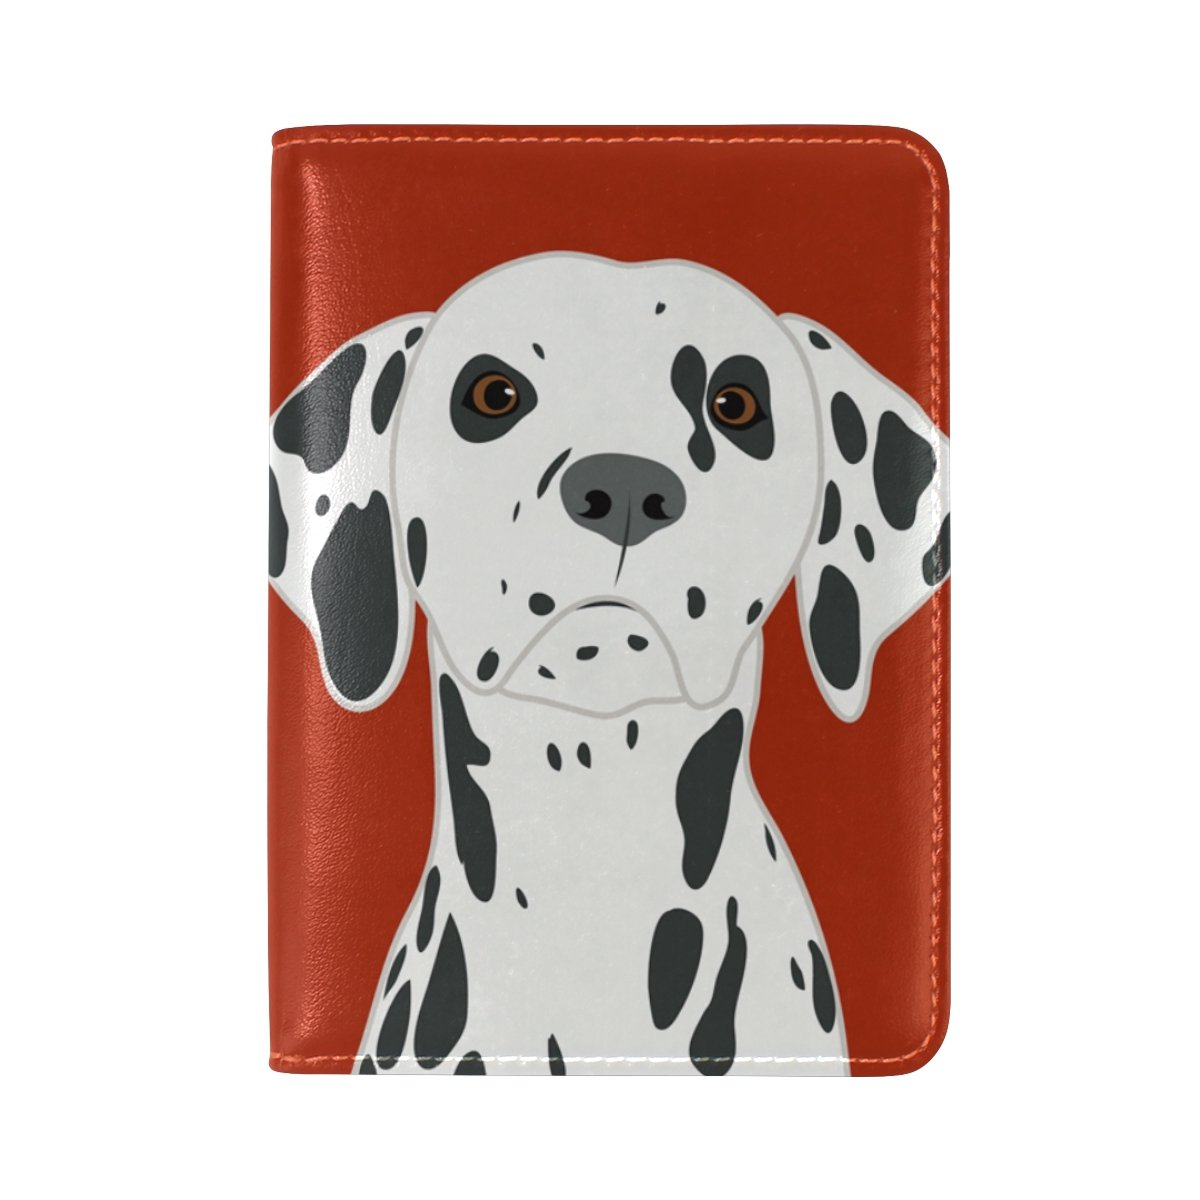 MyDaily Dalmatian Dog Leather Passport Holder Cover Case Protector